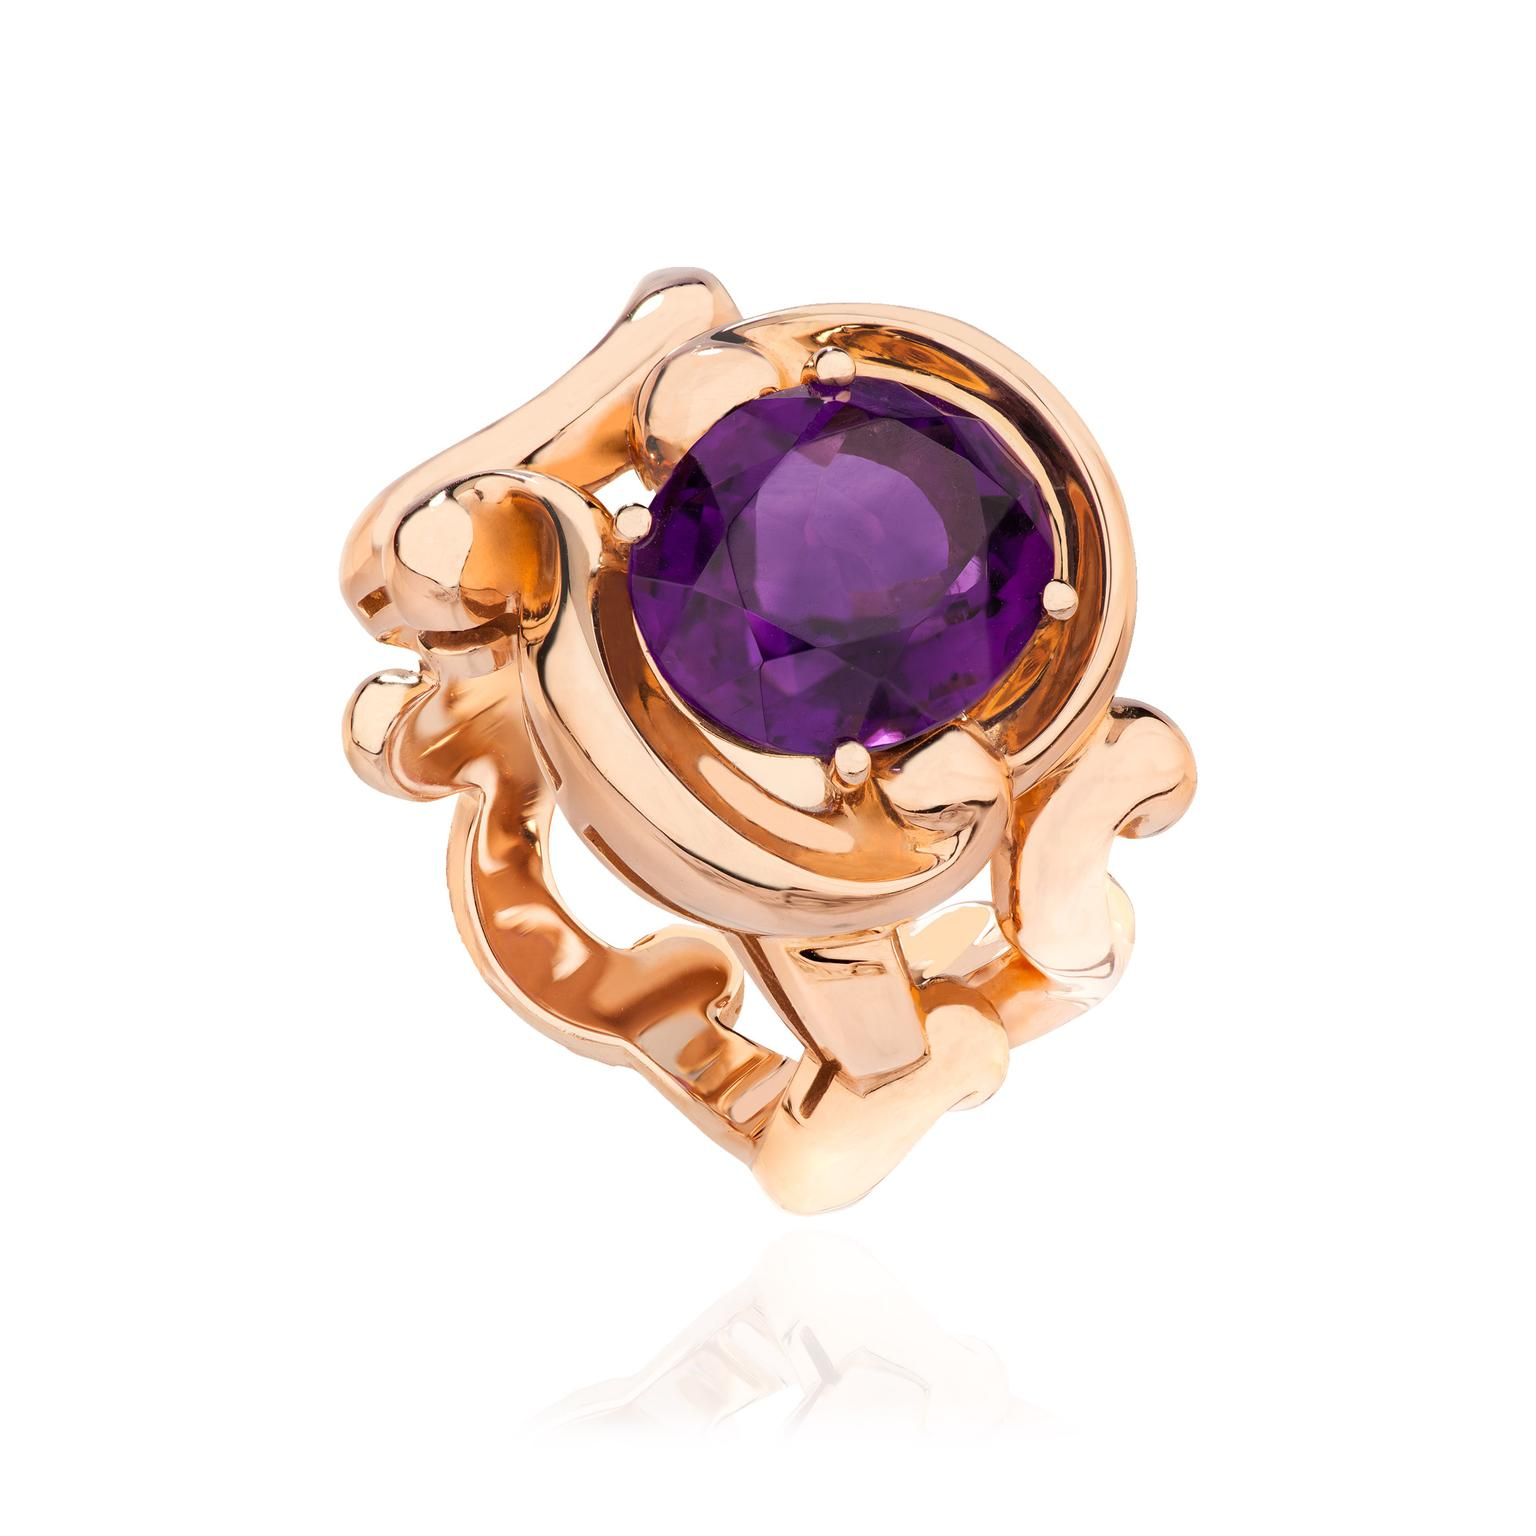 Faberge-Rococo-amethyst-ring-zoom